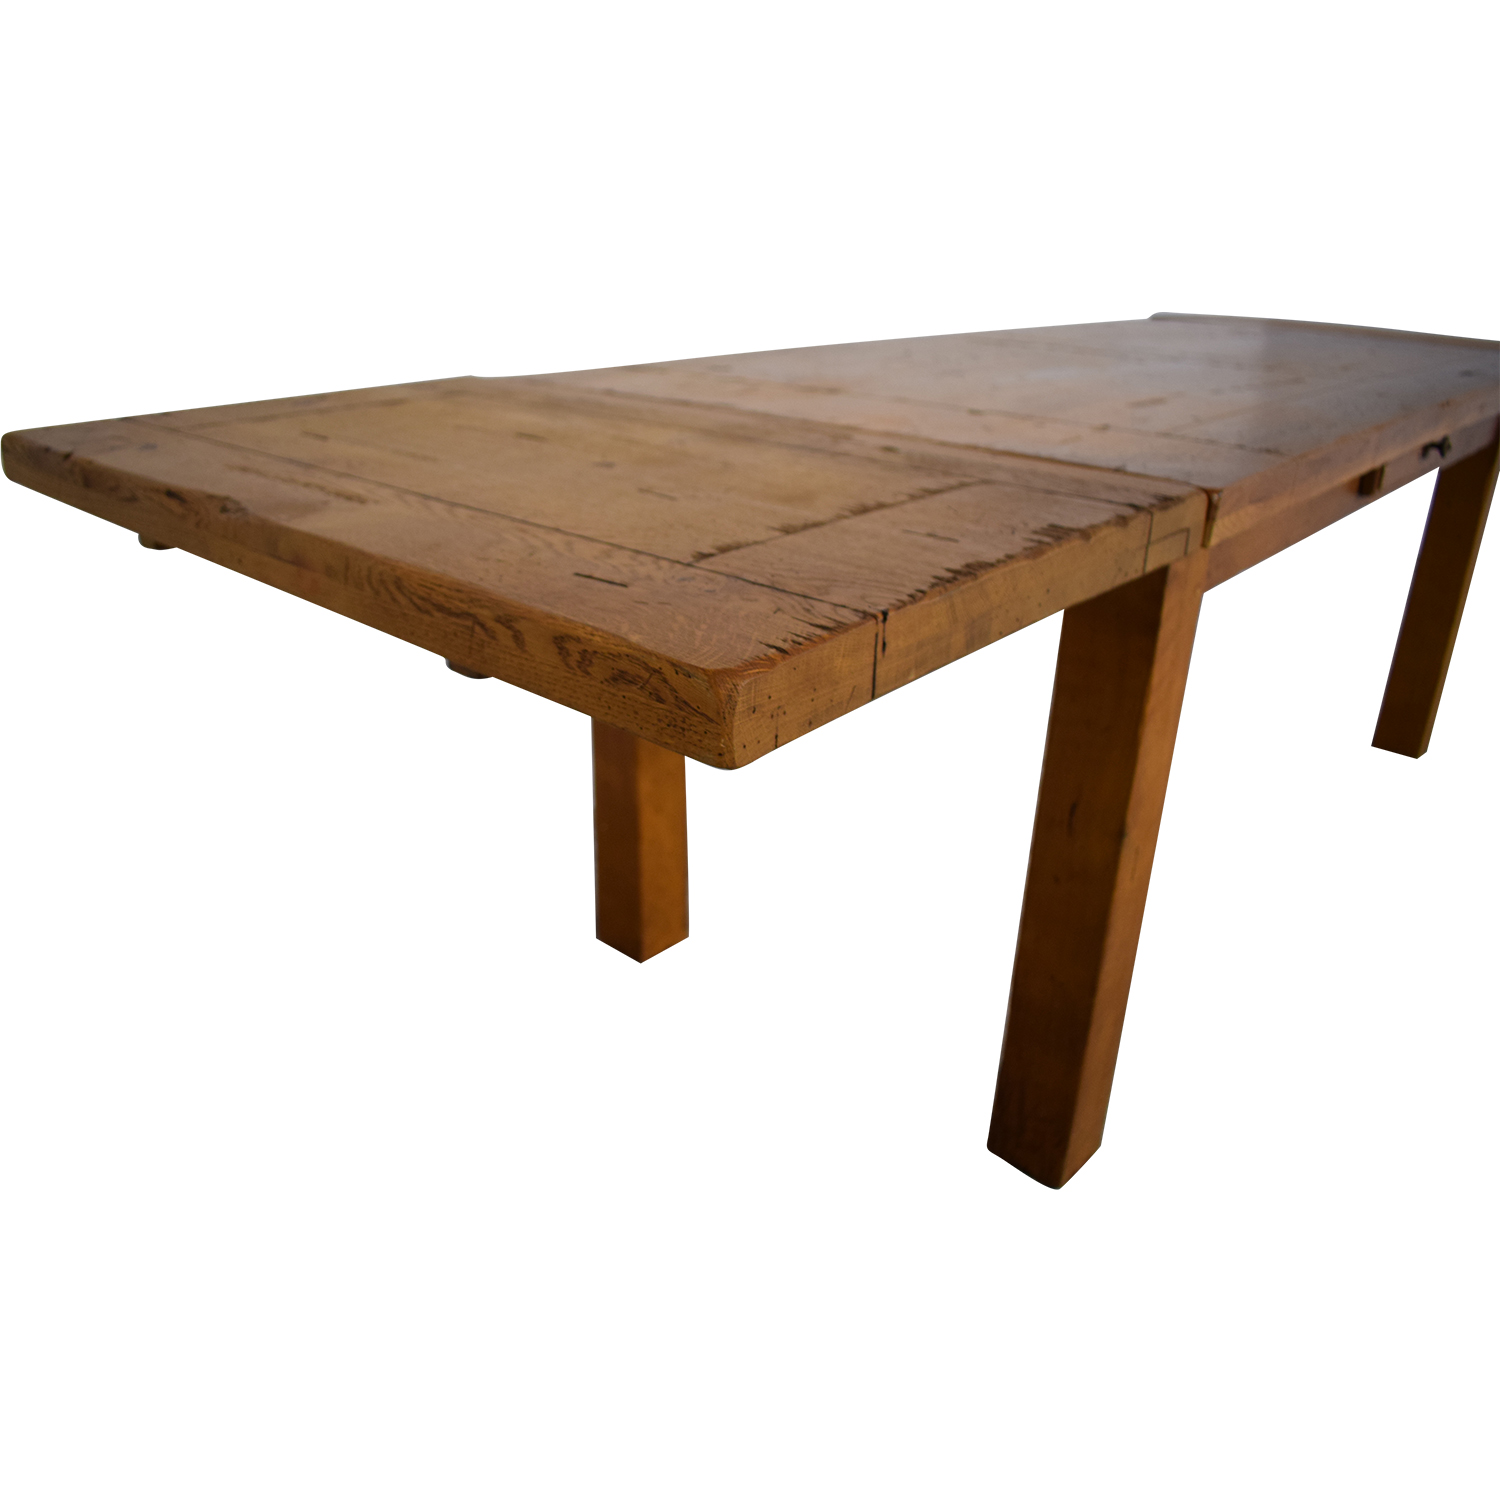 shop Crate & Barrel French Farm Dining Table Crate & Barrel